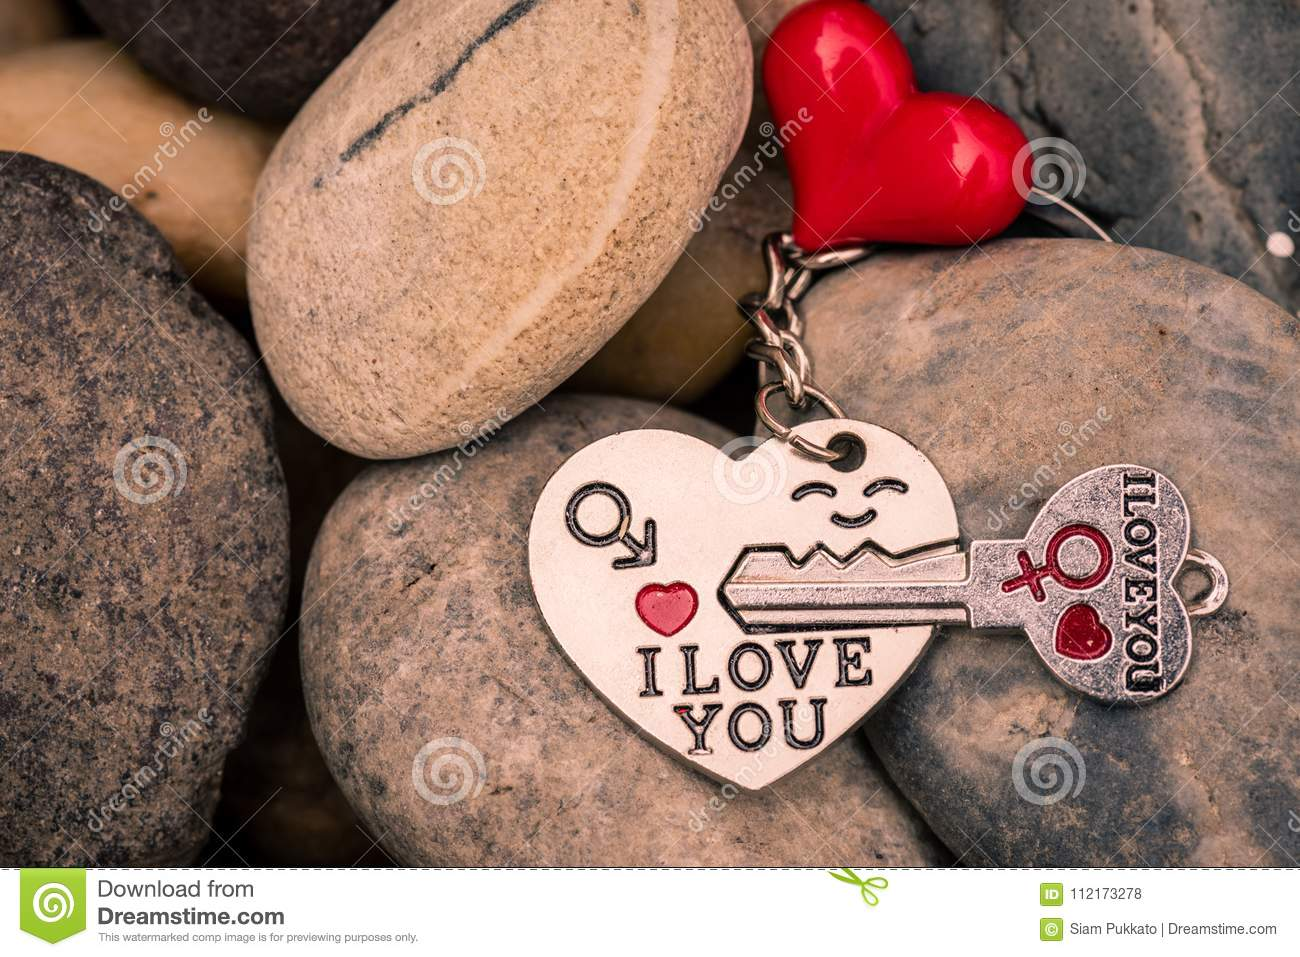 I love you Key chains in heart shaped with red heart on Stones,